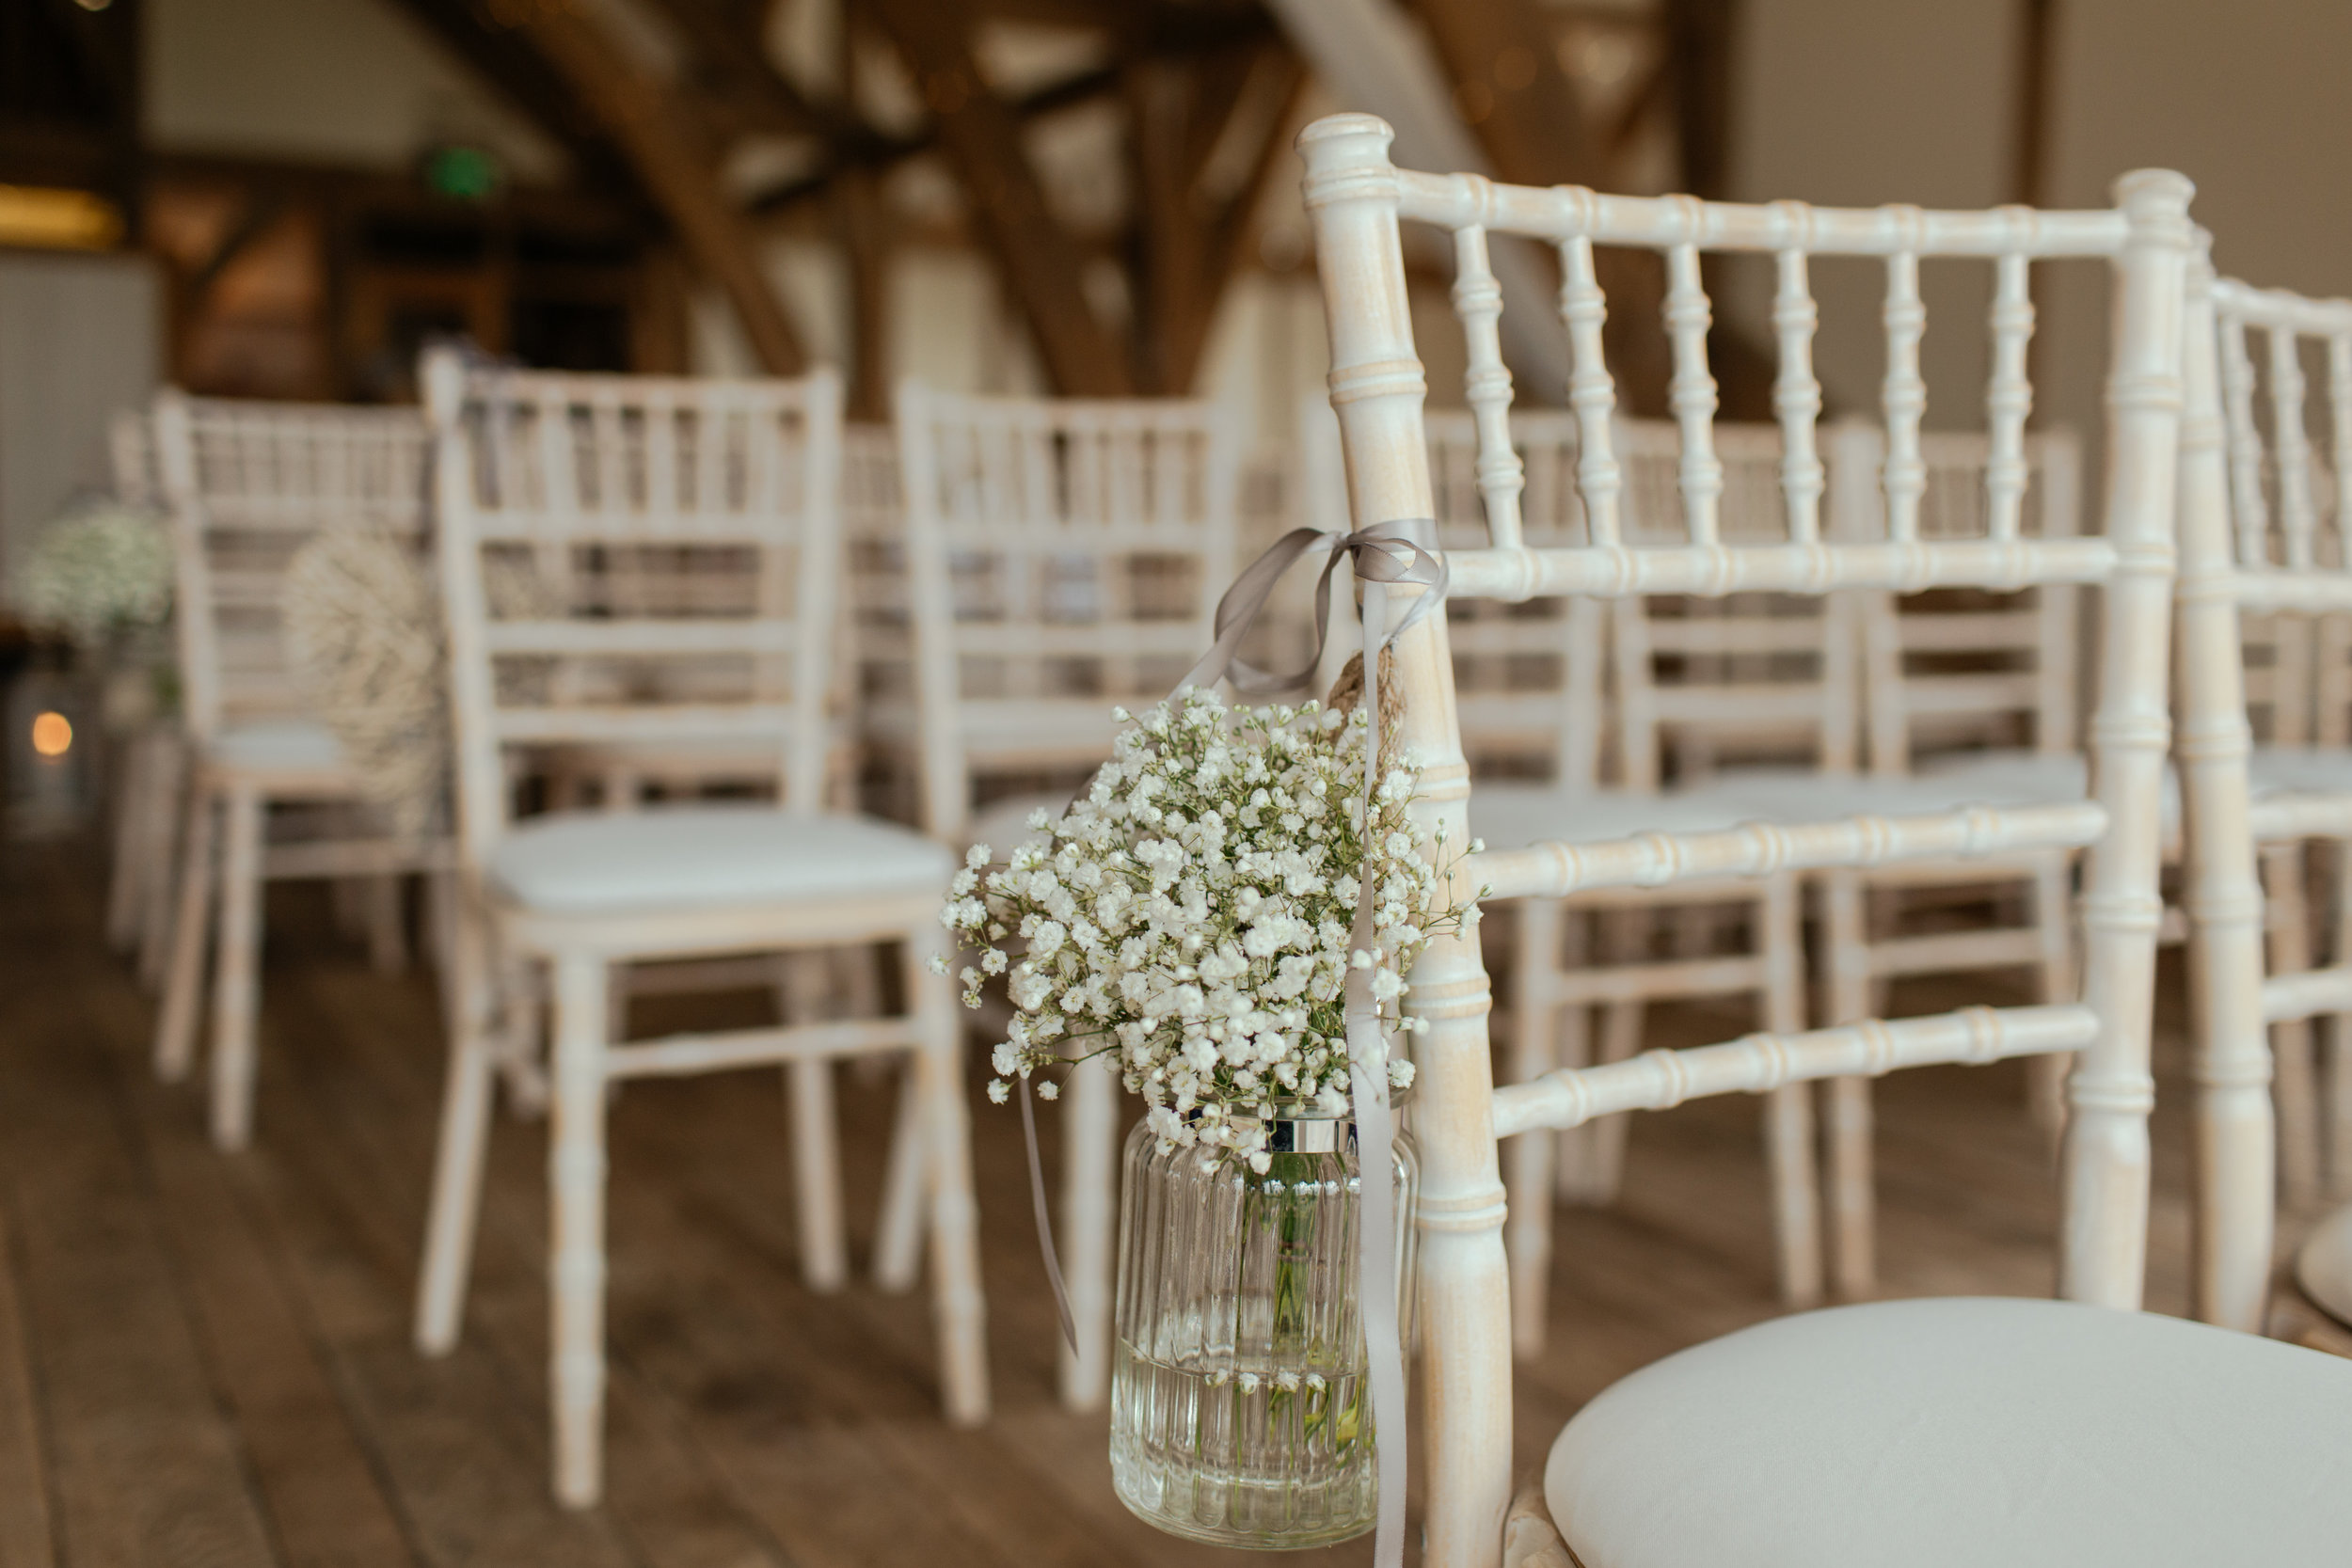 Wedding chair flowers designed by farmer-florist.